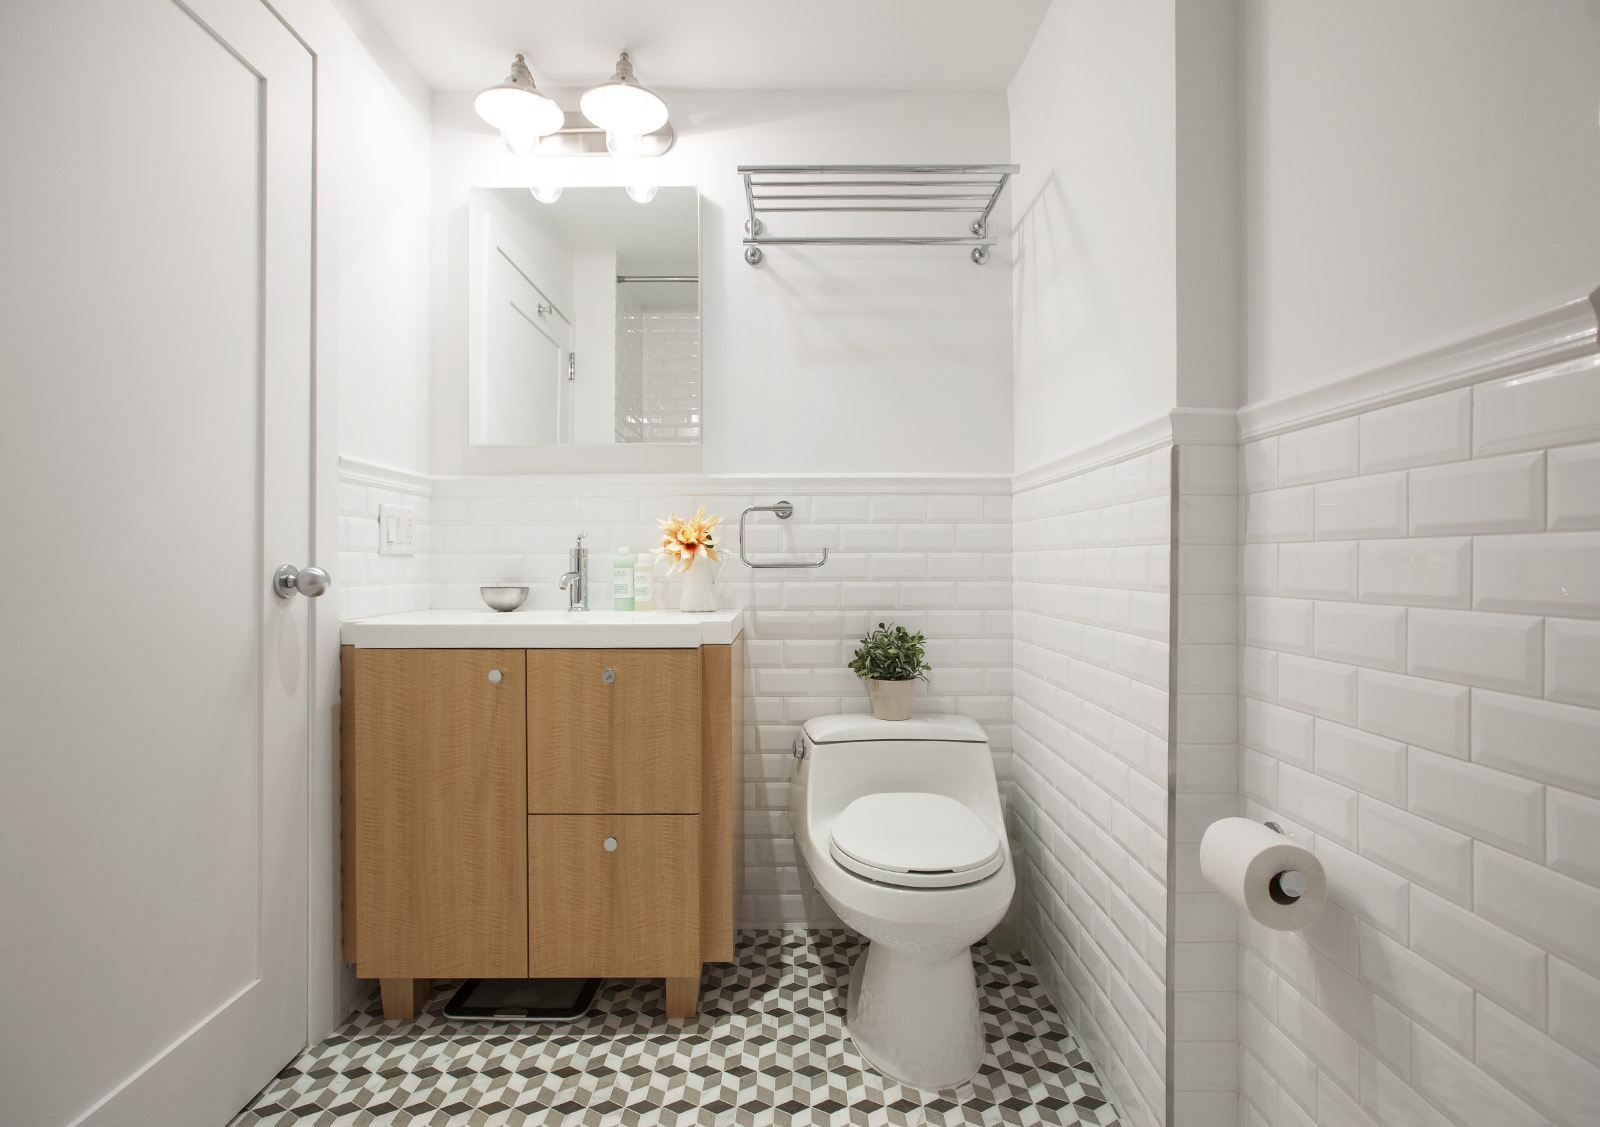 Before & After: A Builder-Basic Bathroom Gets a Little Character ...